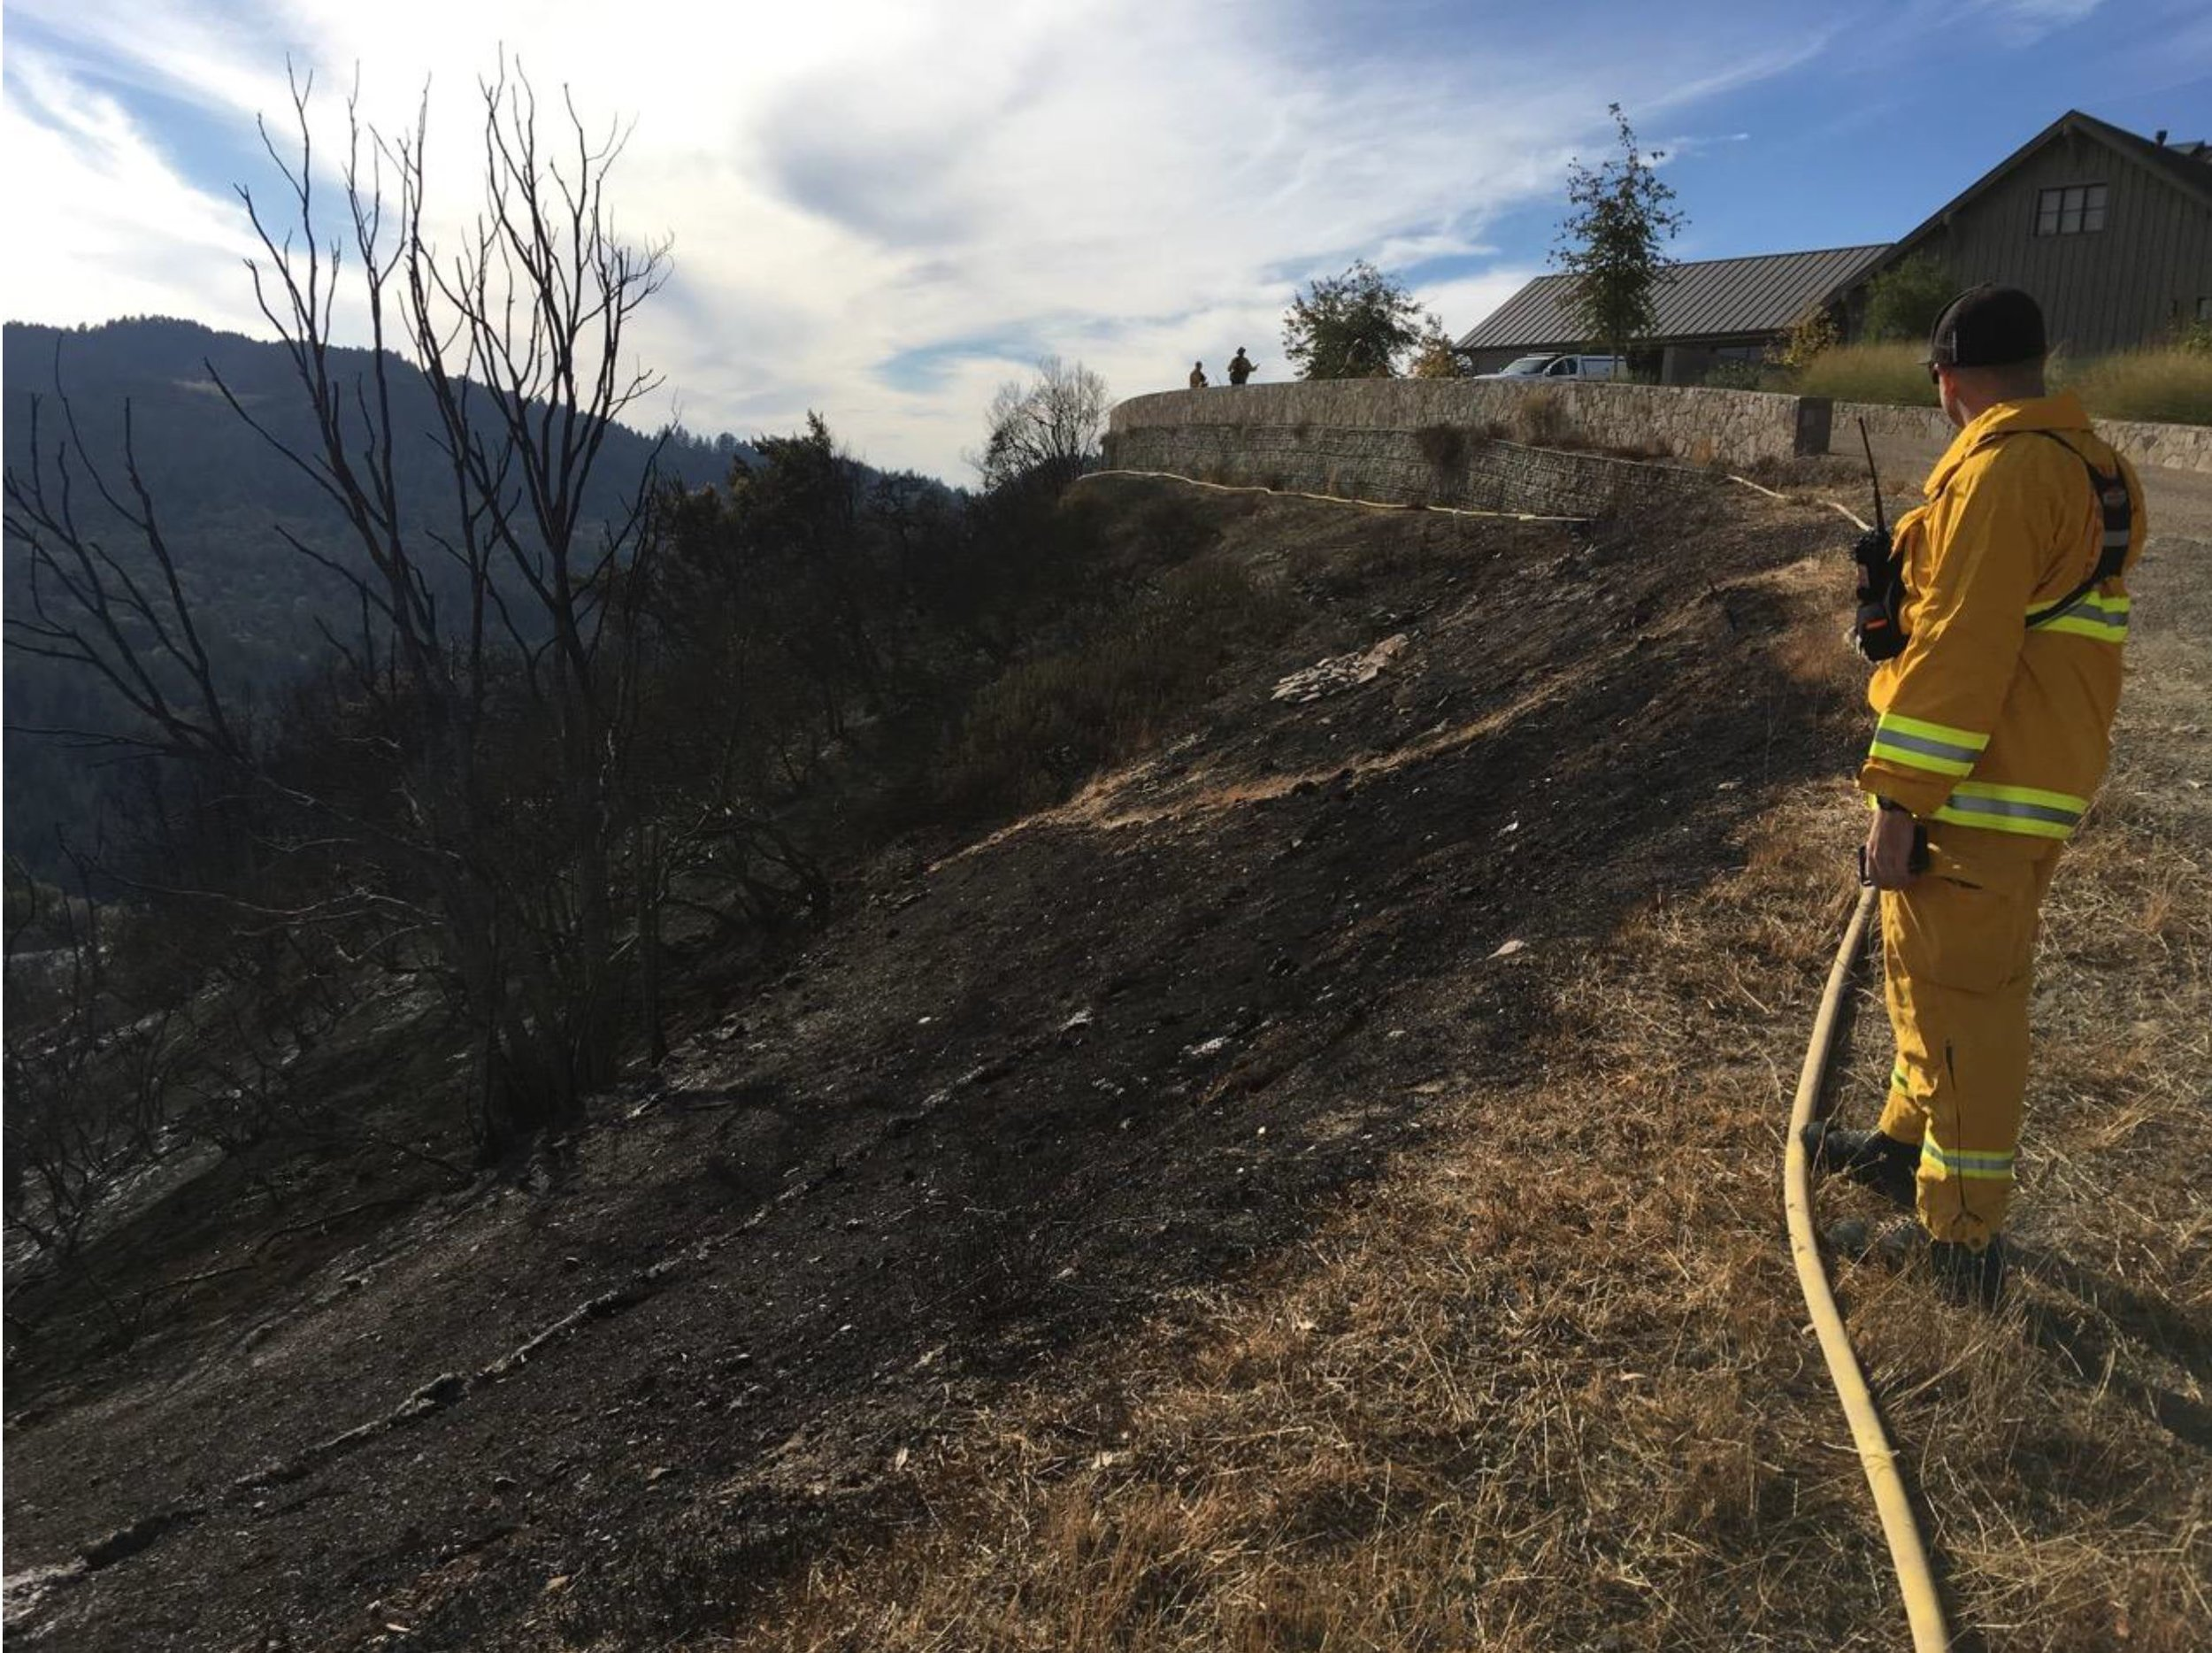 The October 2017 Clear Water Creek Fire near the DCL Fire Station. The wall directed the fire upward away from the house.